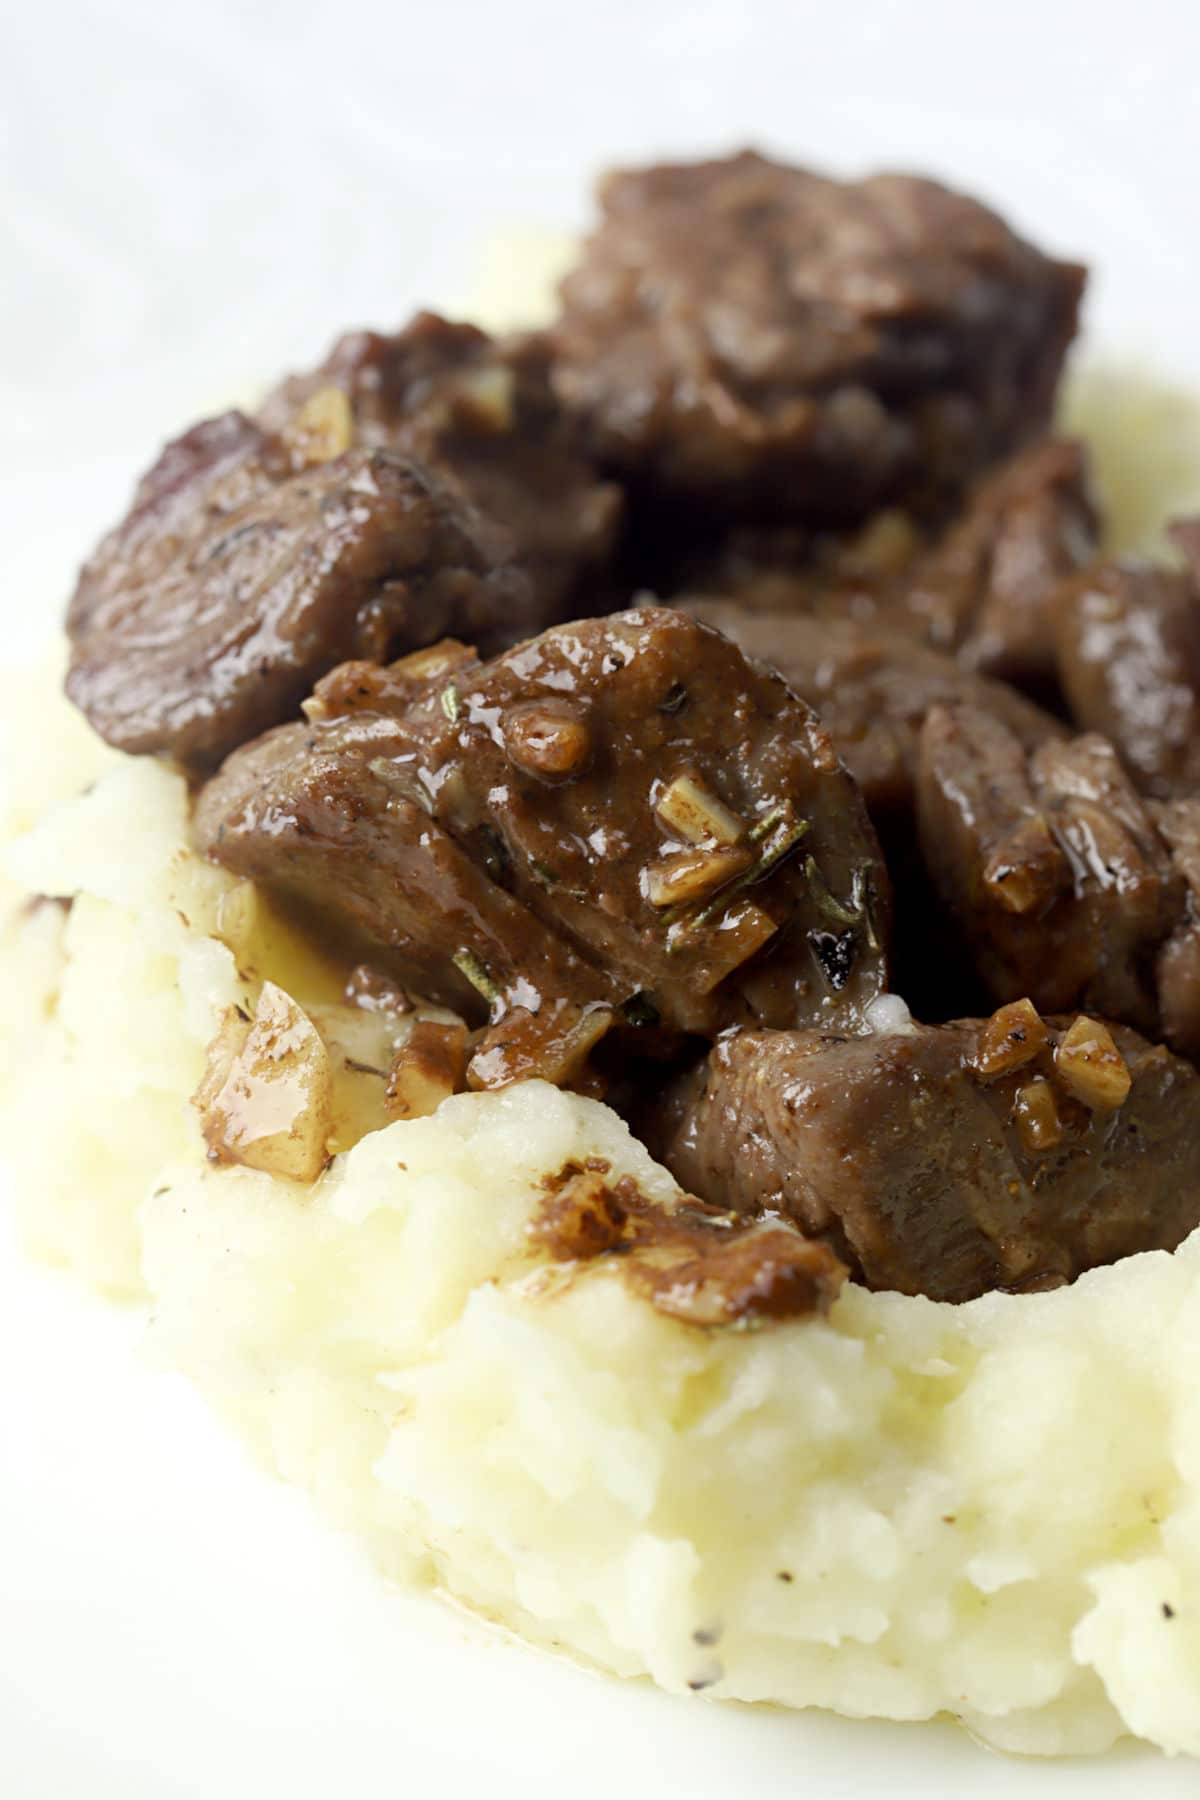 Sirloin tips sitting on a bed of mashed potatoes.